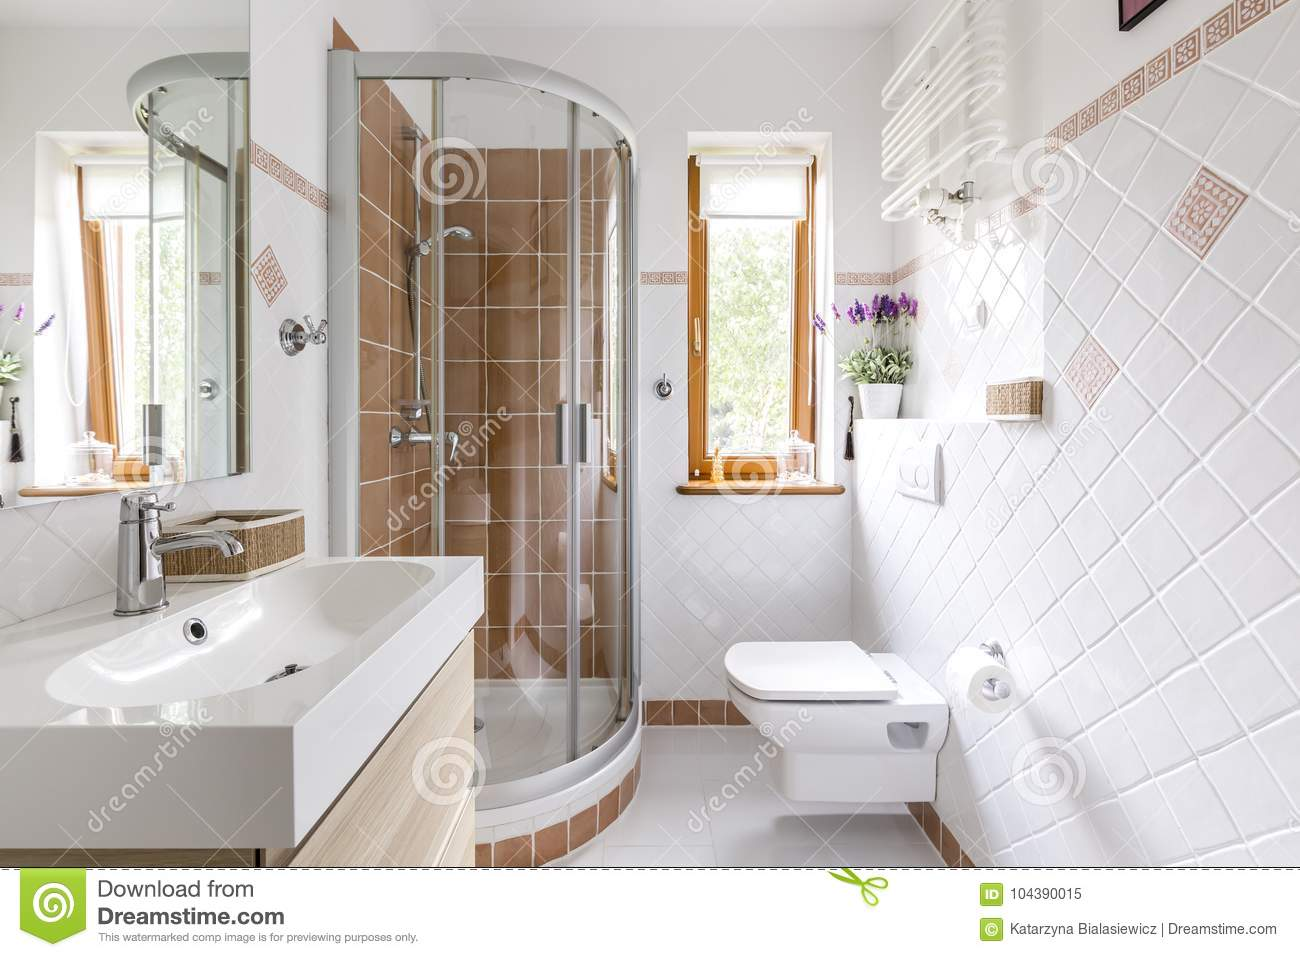 Shower In Small White Bathroom Stock Image - Image of lavender ...